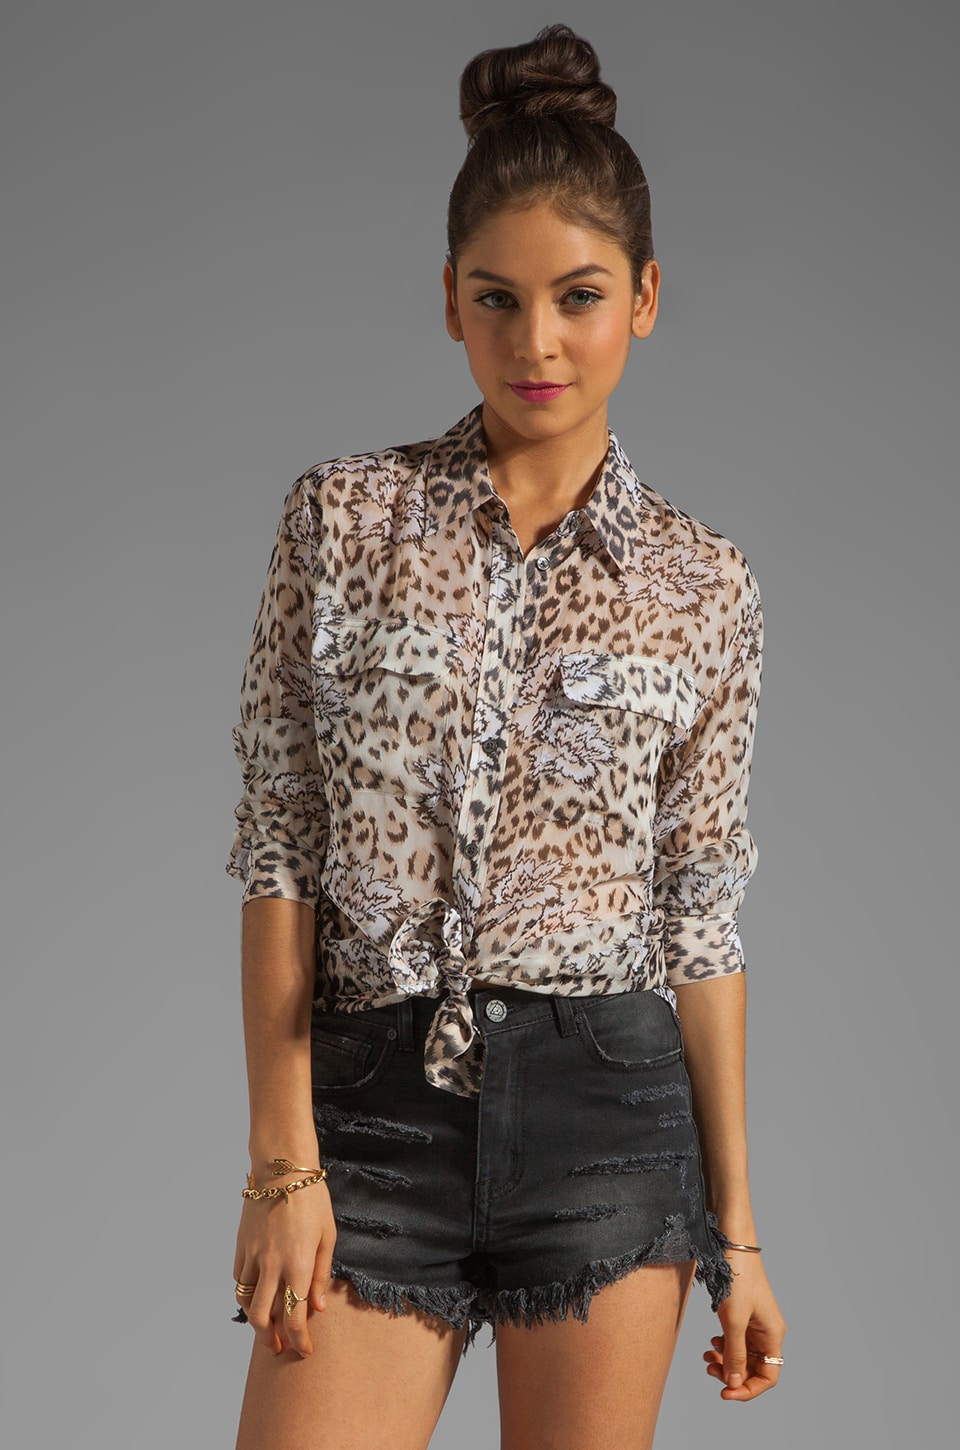 Equipment Signature Floral Leopard Blouse in Natural